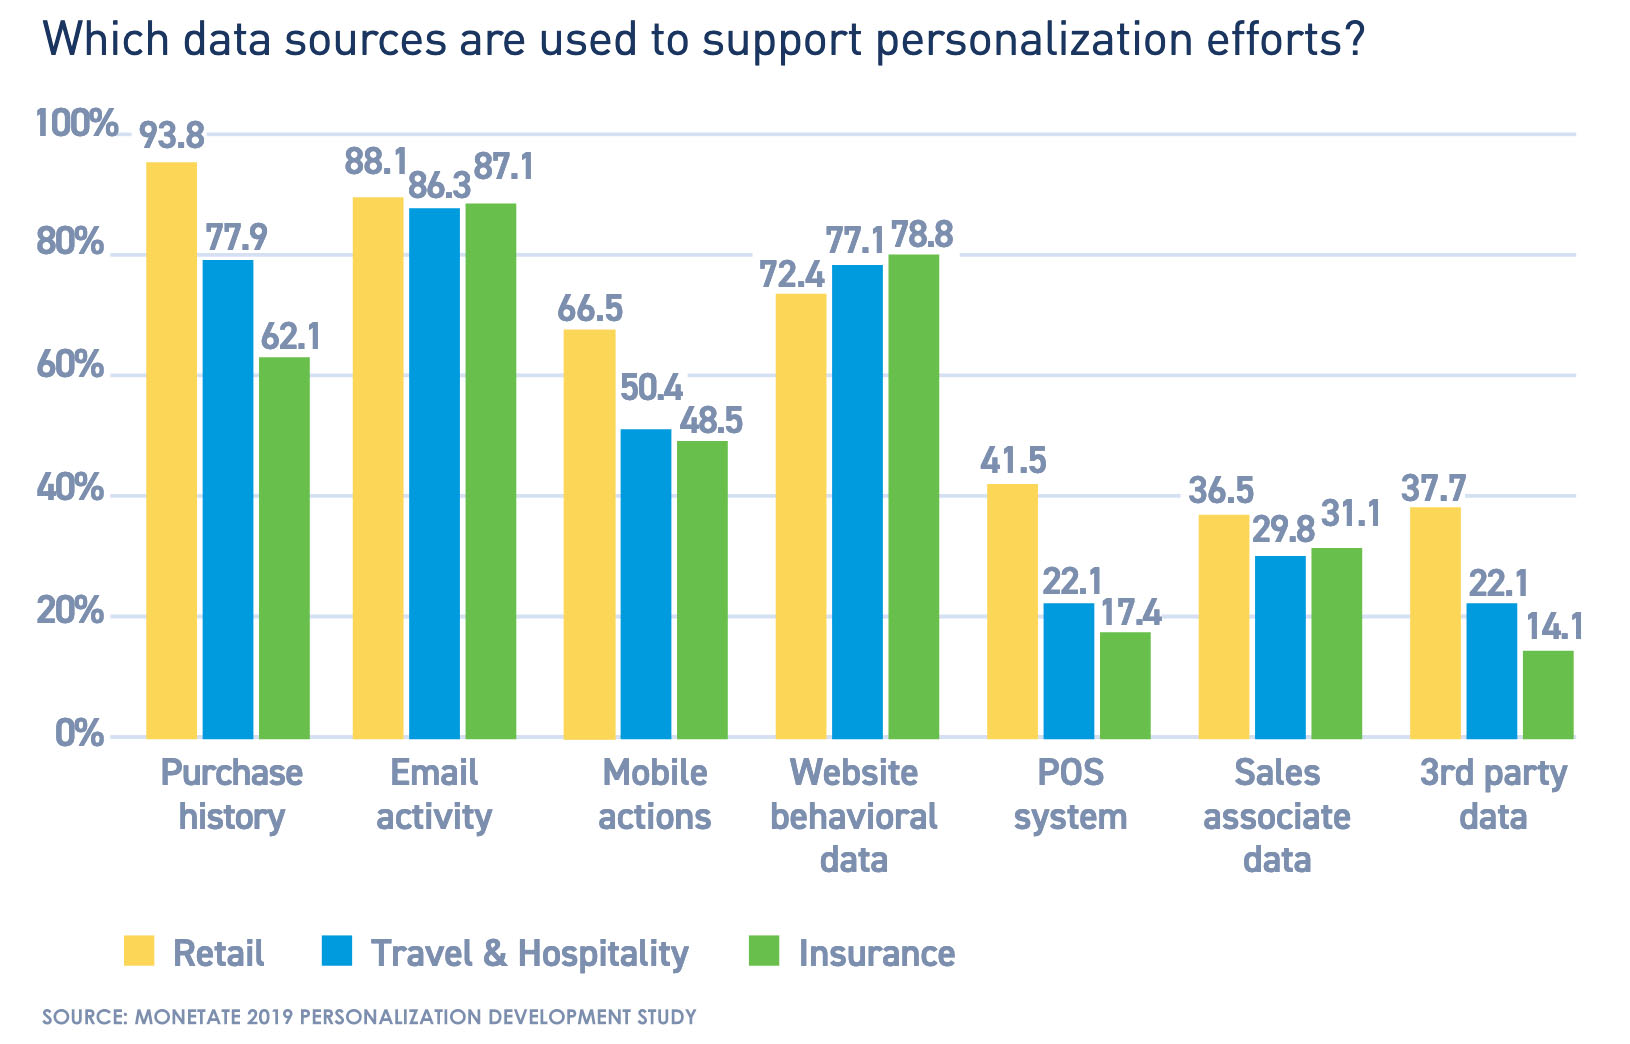 Which data sources are used to support personalization efforts